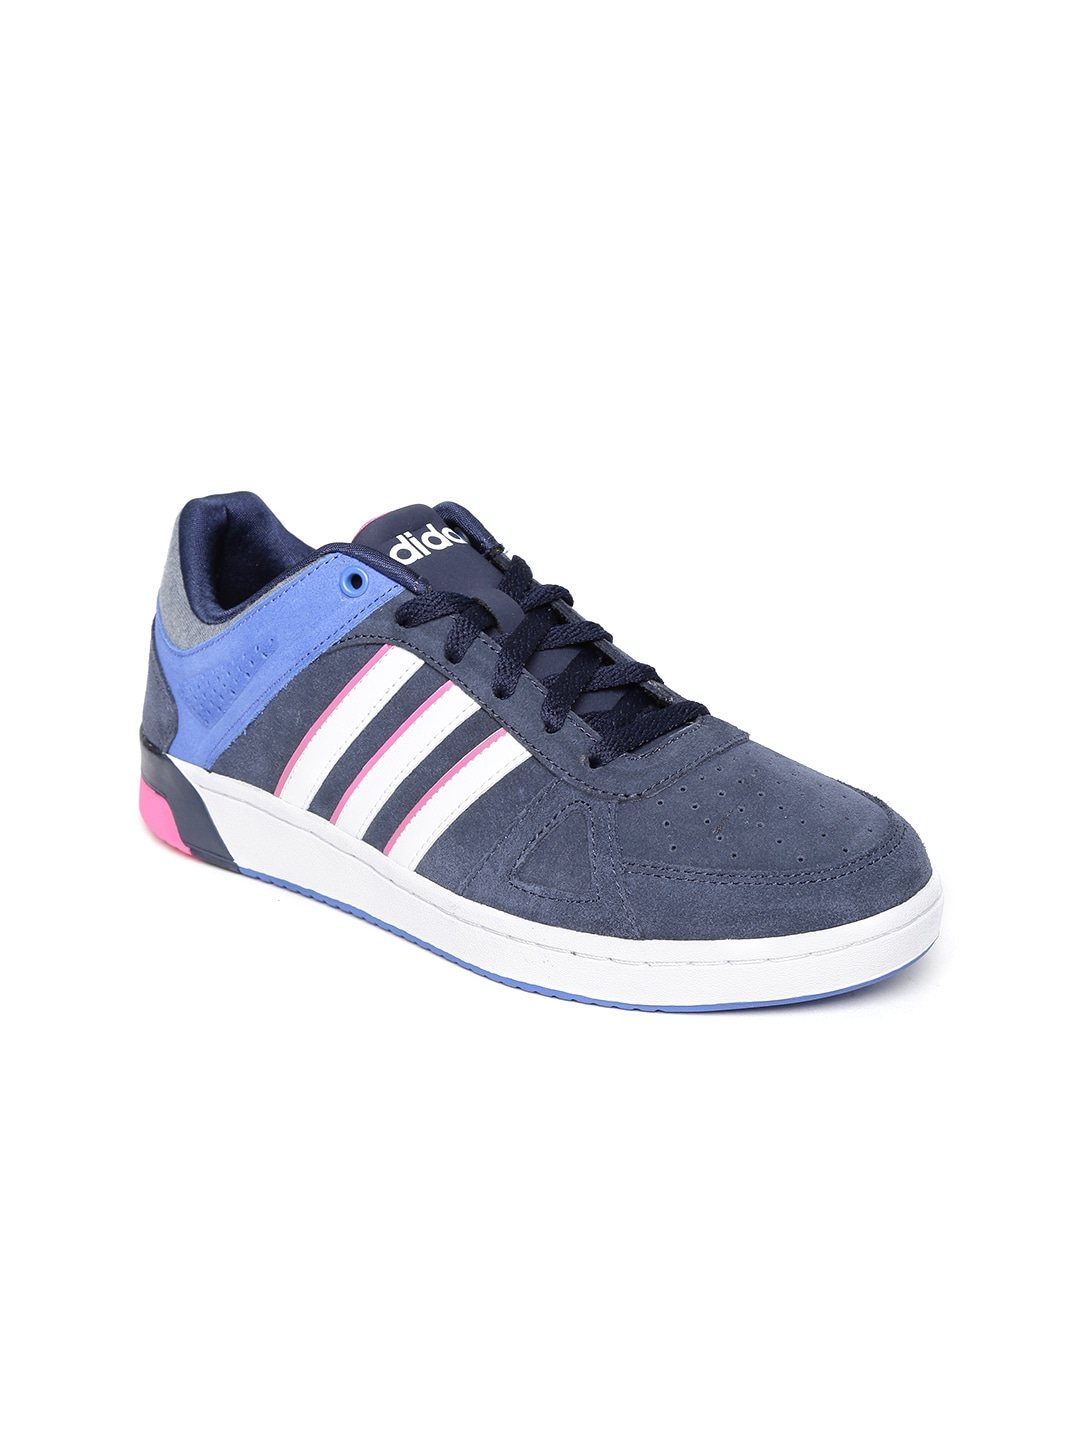 215481059e8 Adidas neo f99483 Women Navy Hoops Team Suede Sneakers- Price in India